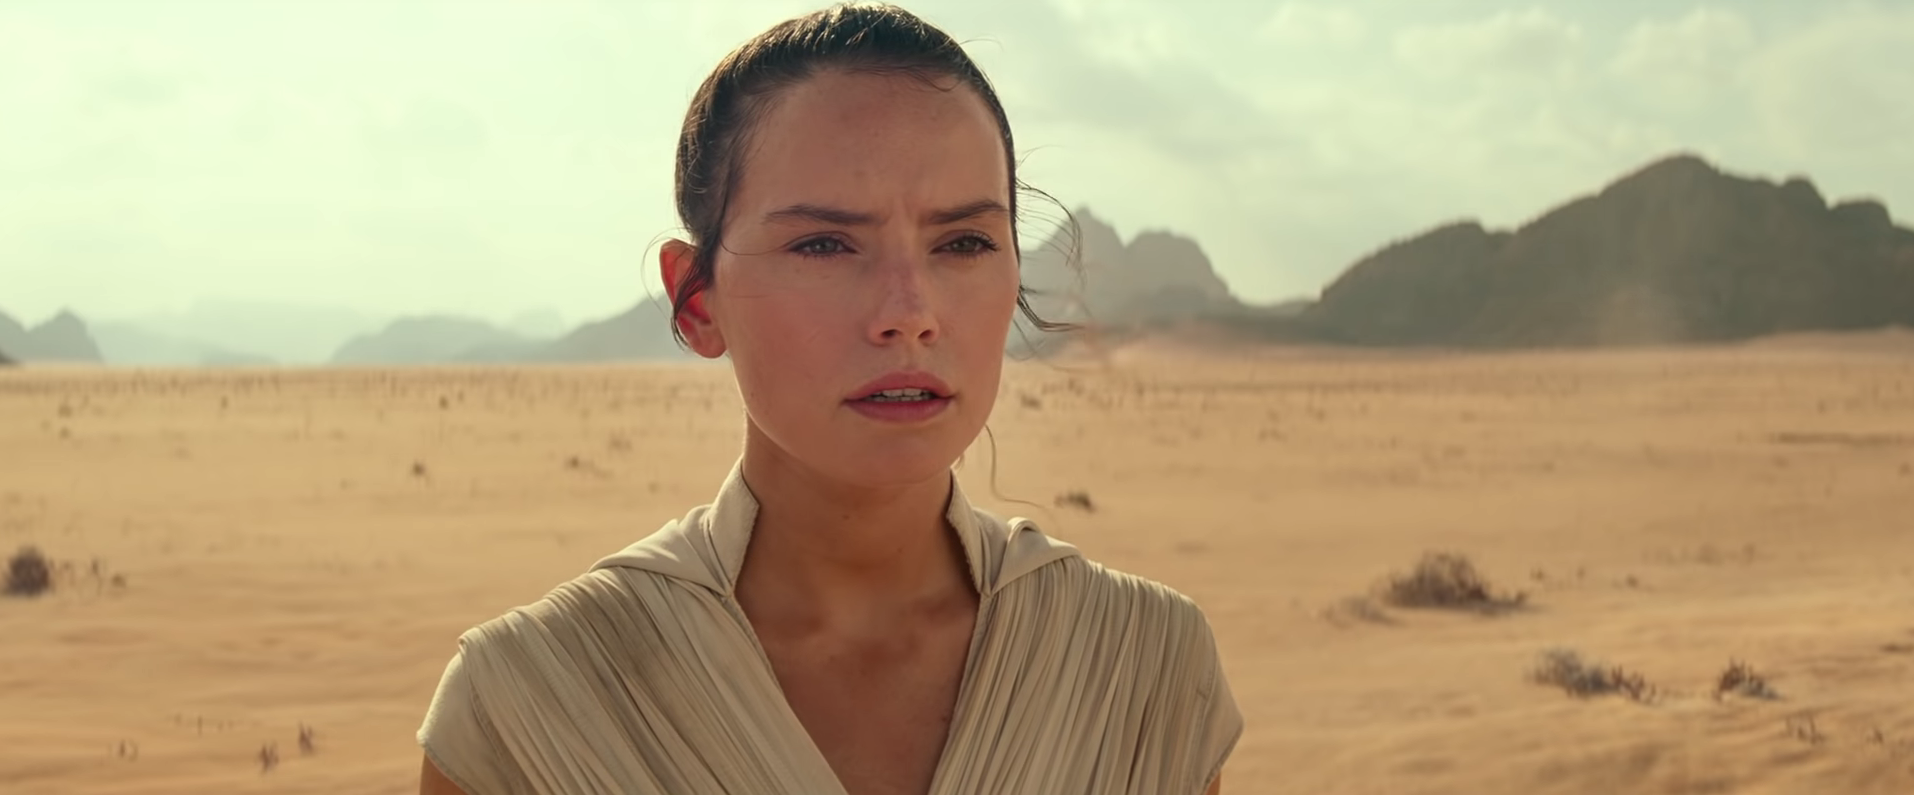 The Trailer For Star Wars Episode IX Is Here!